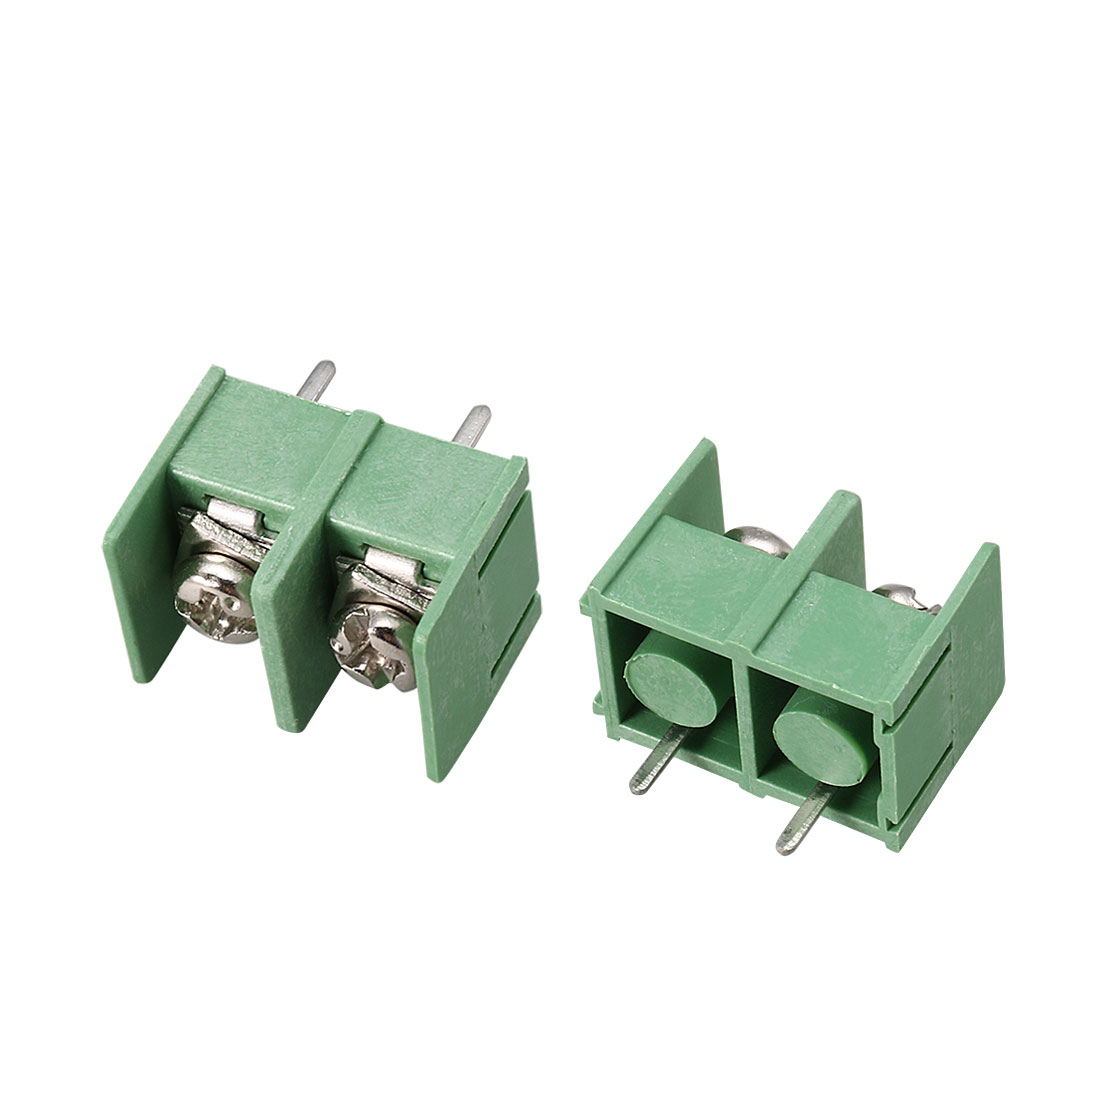 20pcs Straight 8.5mm Pitch Spacing PCB Board Mount Type Screw Terminal Blocks Connectors Green AC 300V 20A